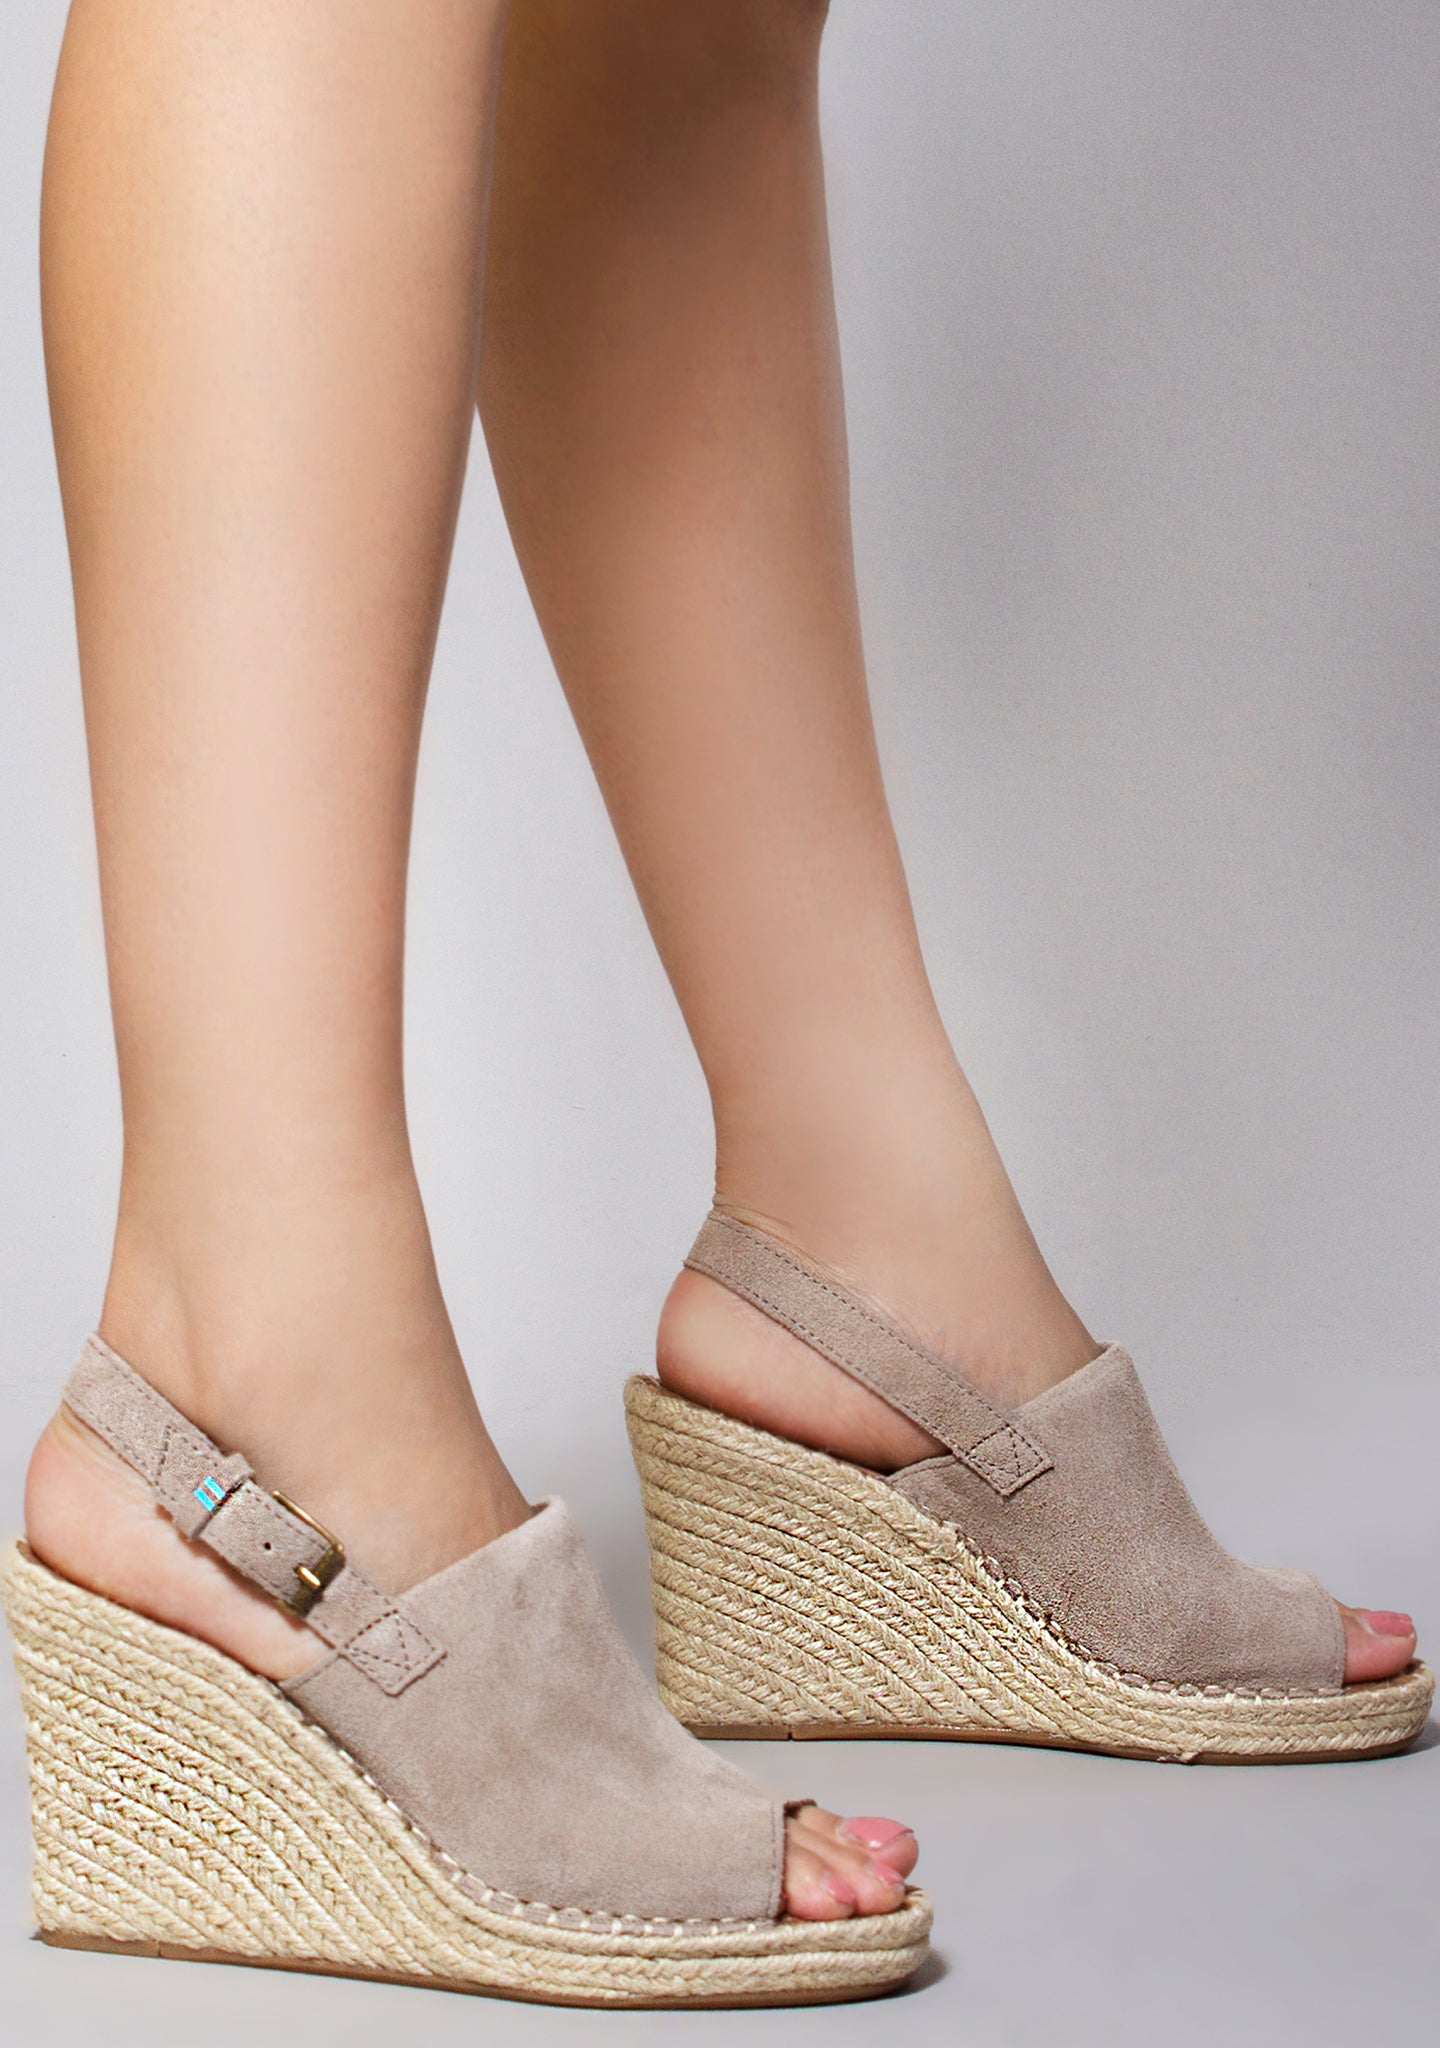 aa1df280fceac Suede Monica Wedges in Desert Taupe